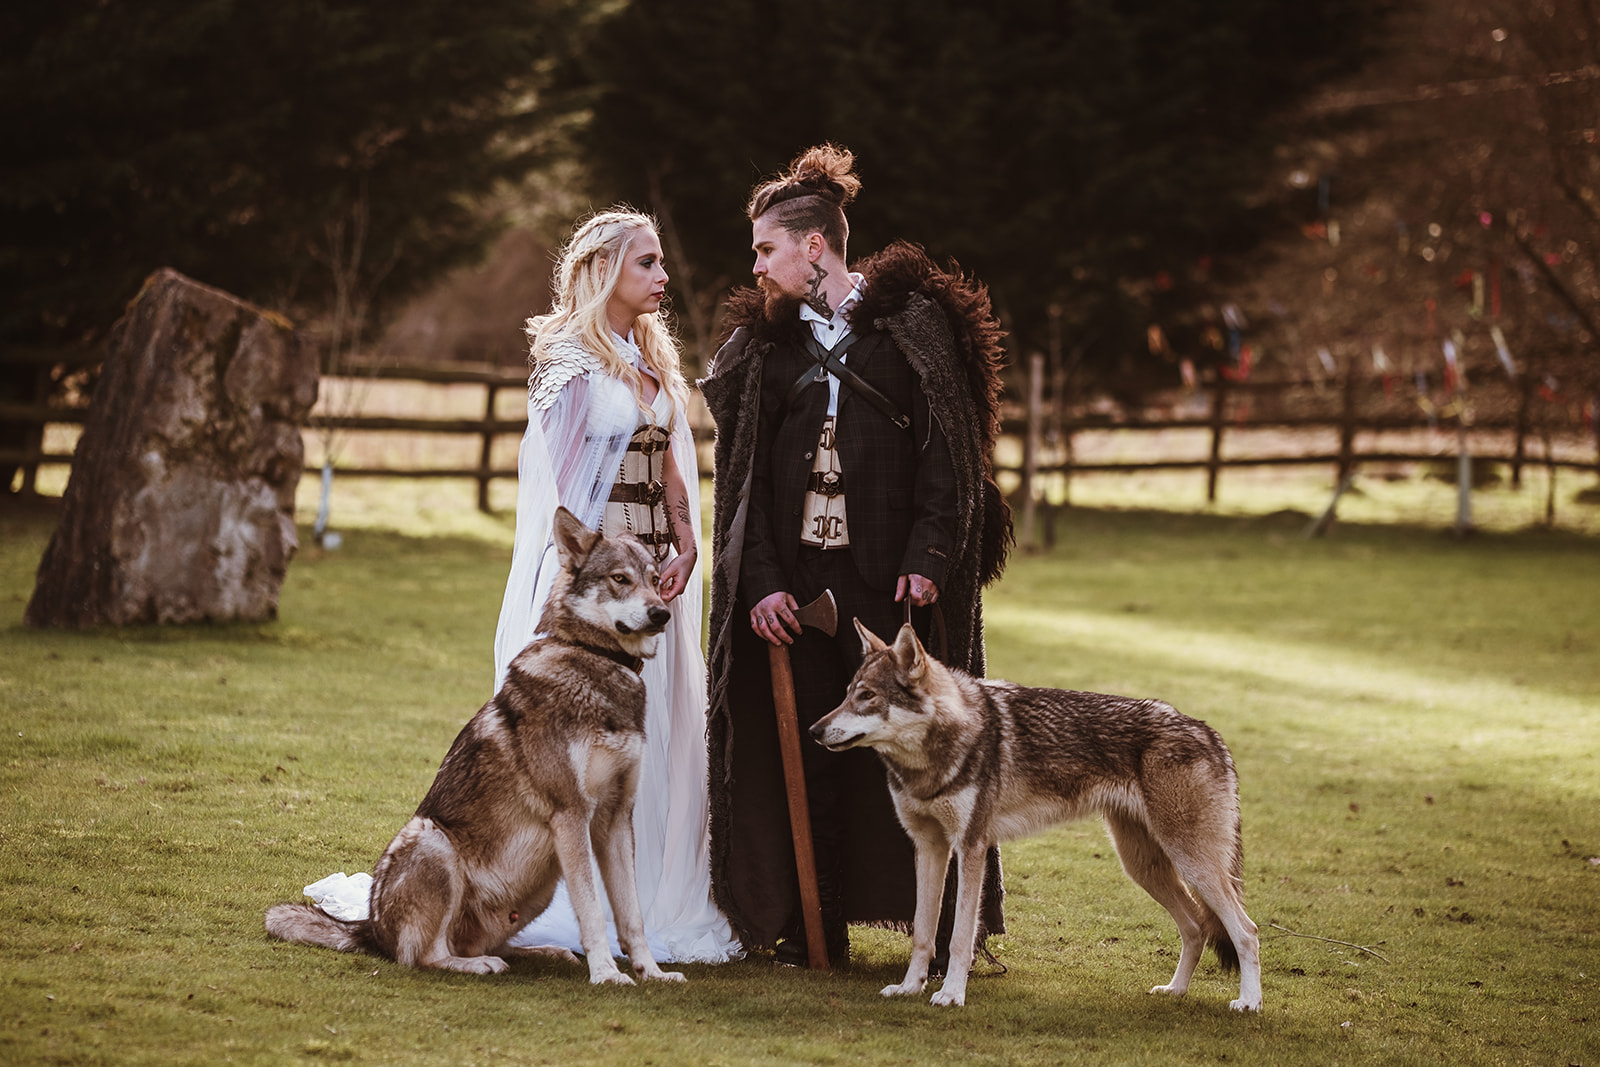 Game Of Thrones Wedding- Tom Jeavons Photography- Unconventional Wedding- Fantasy Wedding- Themed Wedding- wedding wolves